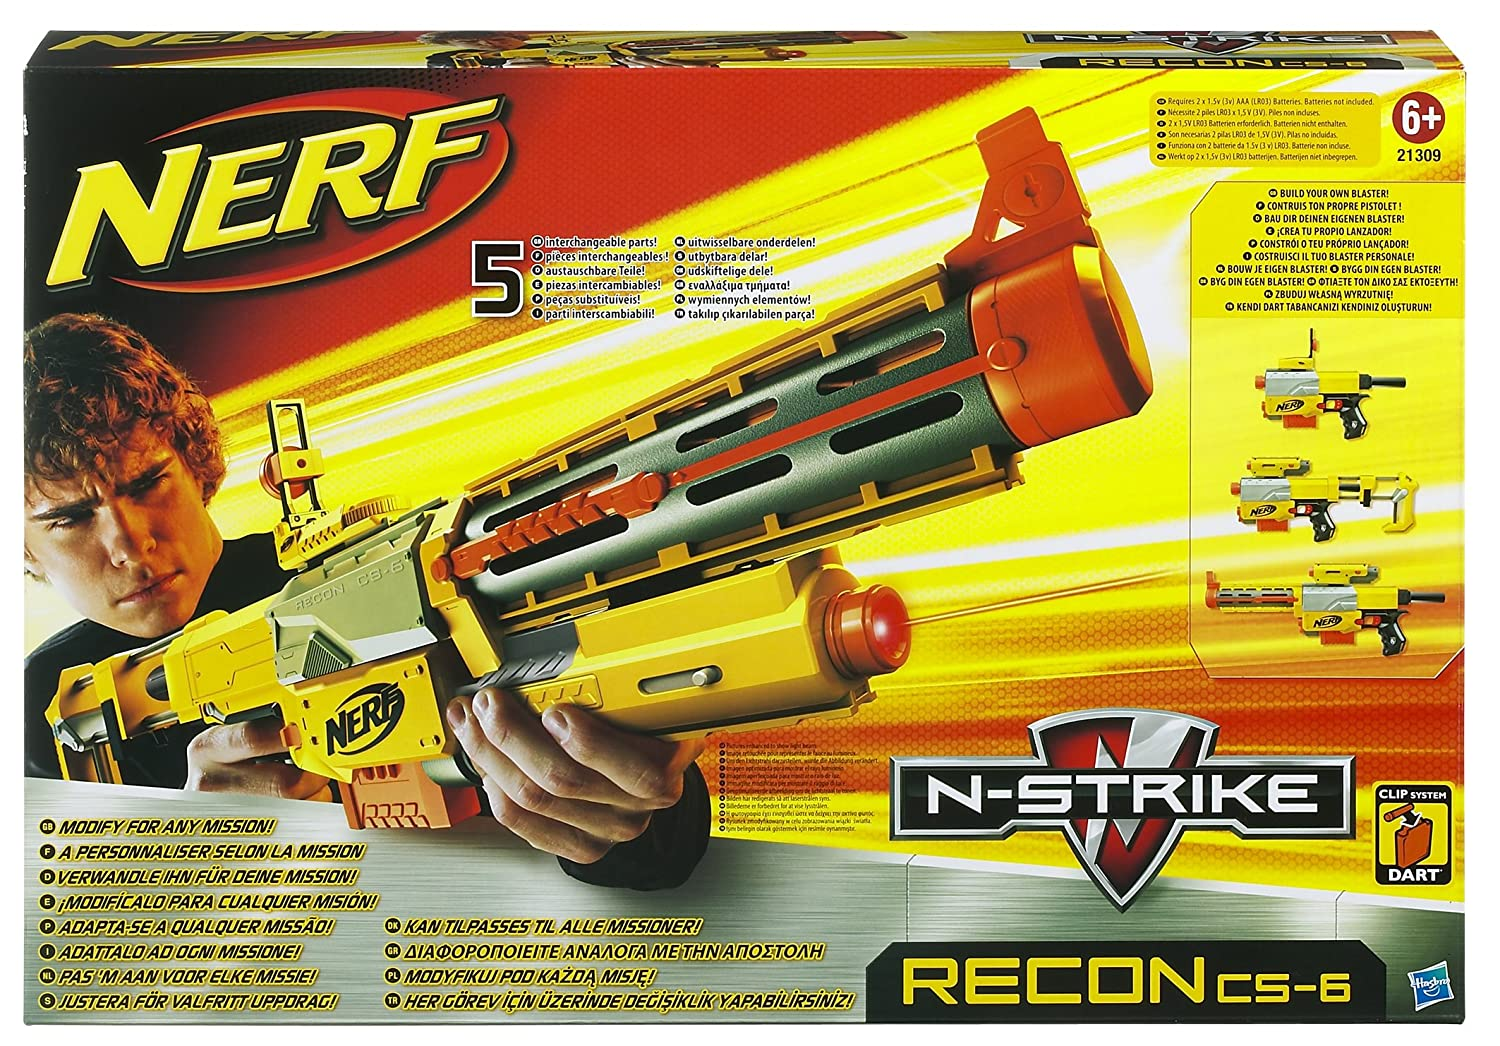 Nerf gun deploy cs-6 blaster with red laser light, bullet mag and 6